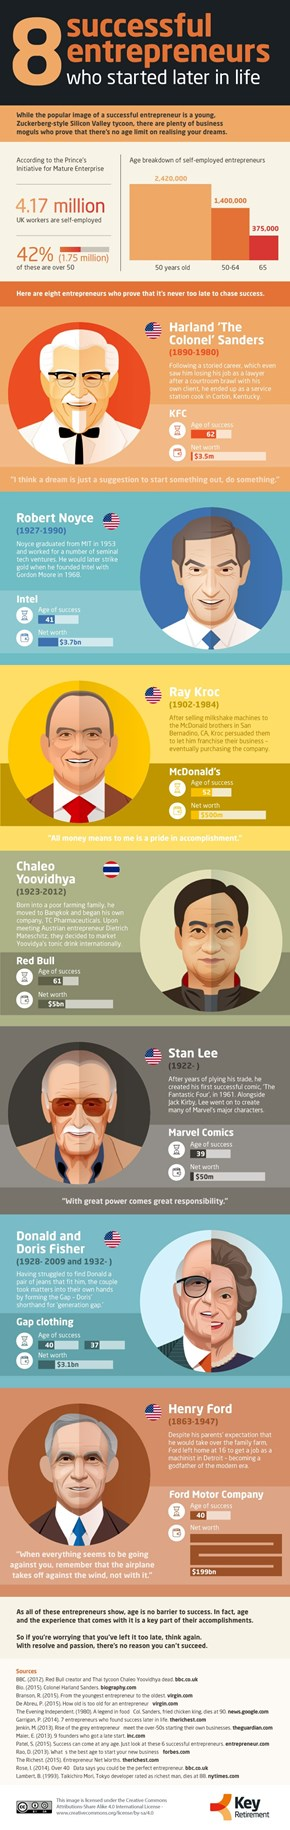 8 Successful Entrepreneurs Who Started Late in Life